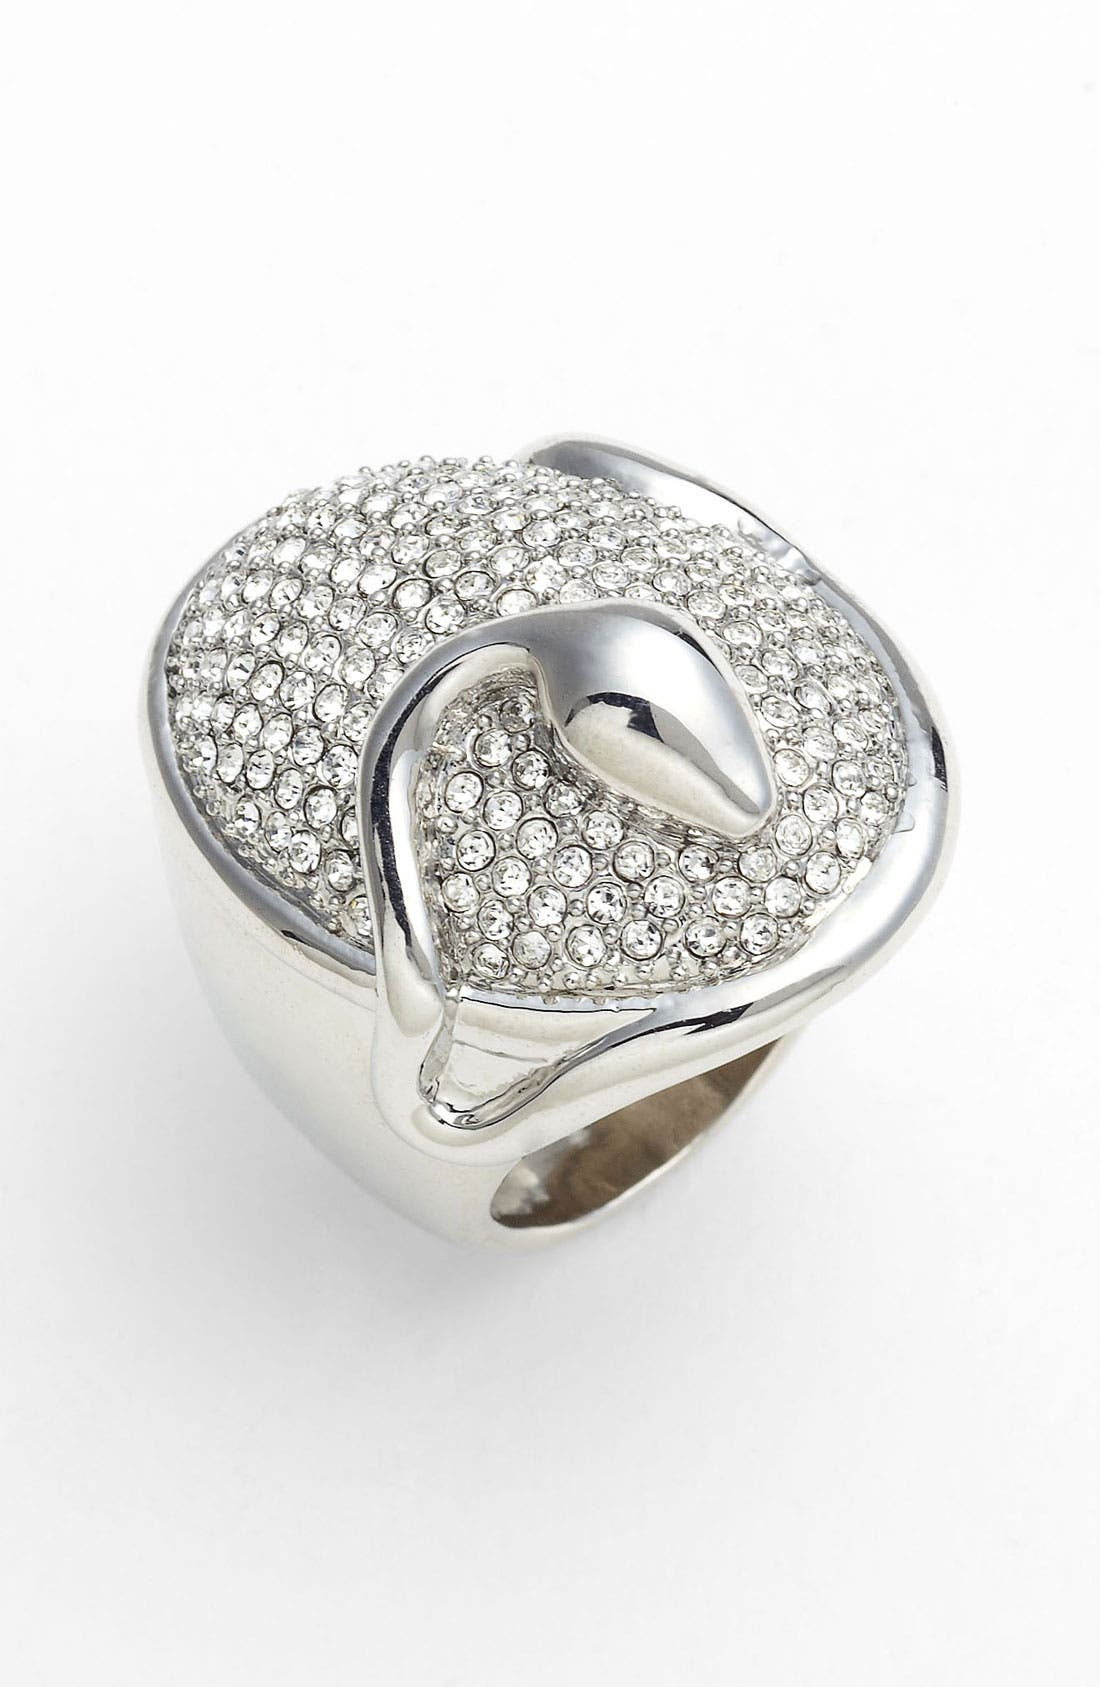 Main Image - Vice Camuto Cocktail Ring